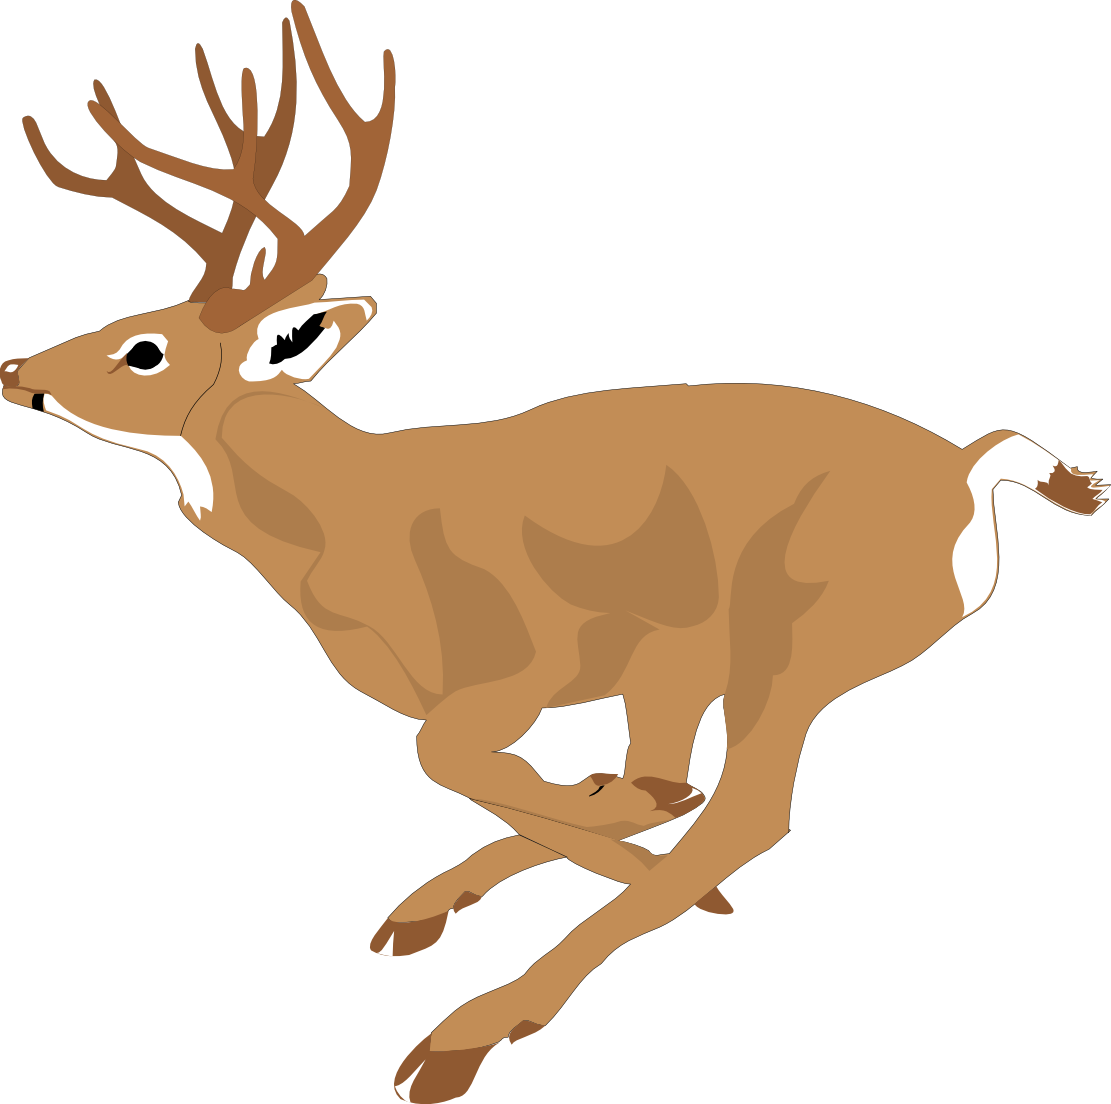 Christmas deer clipart banner transparent stock Deer Clipart Free at GetDrawings.com | Free for personal use Deer ... banner transparent stock